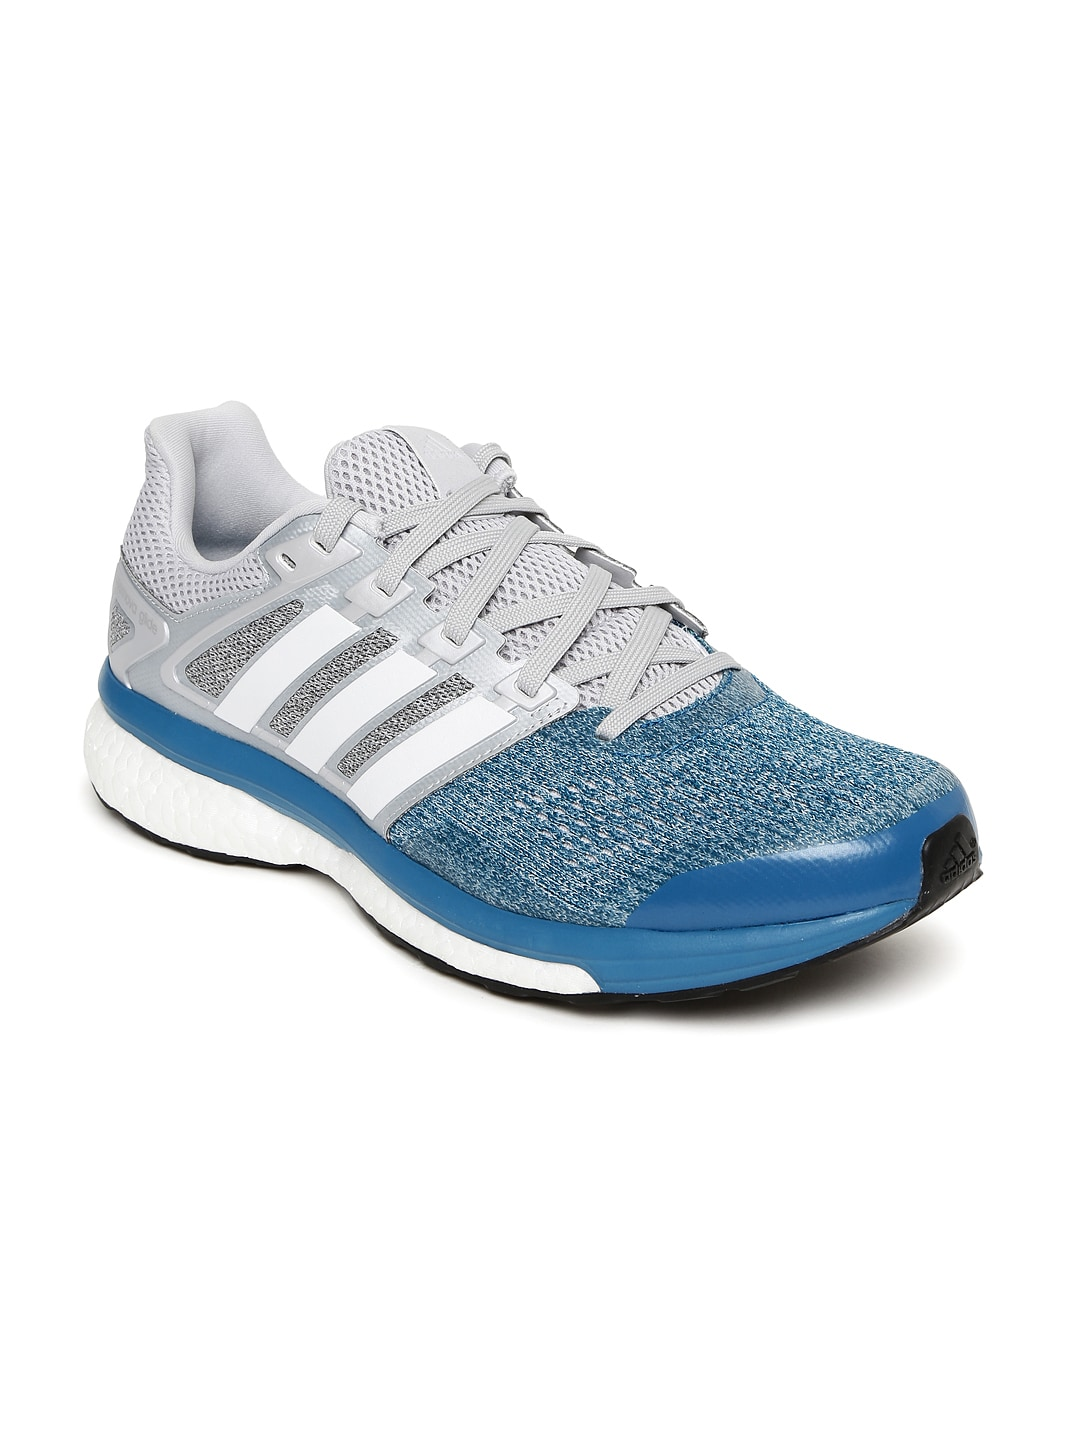 3ea0c4530a8f3 Adidas bb4126 Men Blue And Grey Supernova Glide 8 Running Shoes- Price in  India